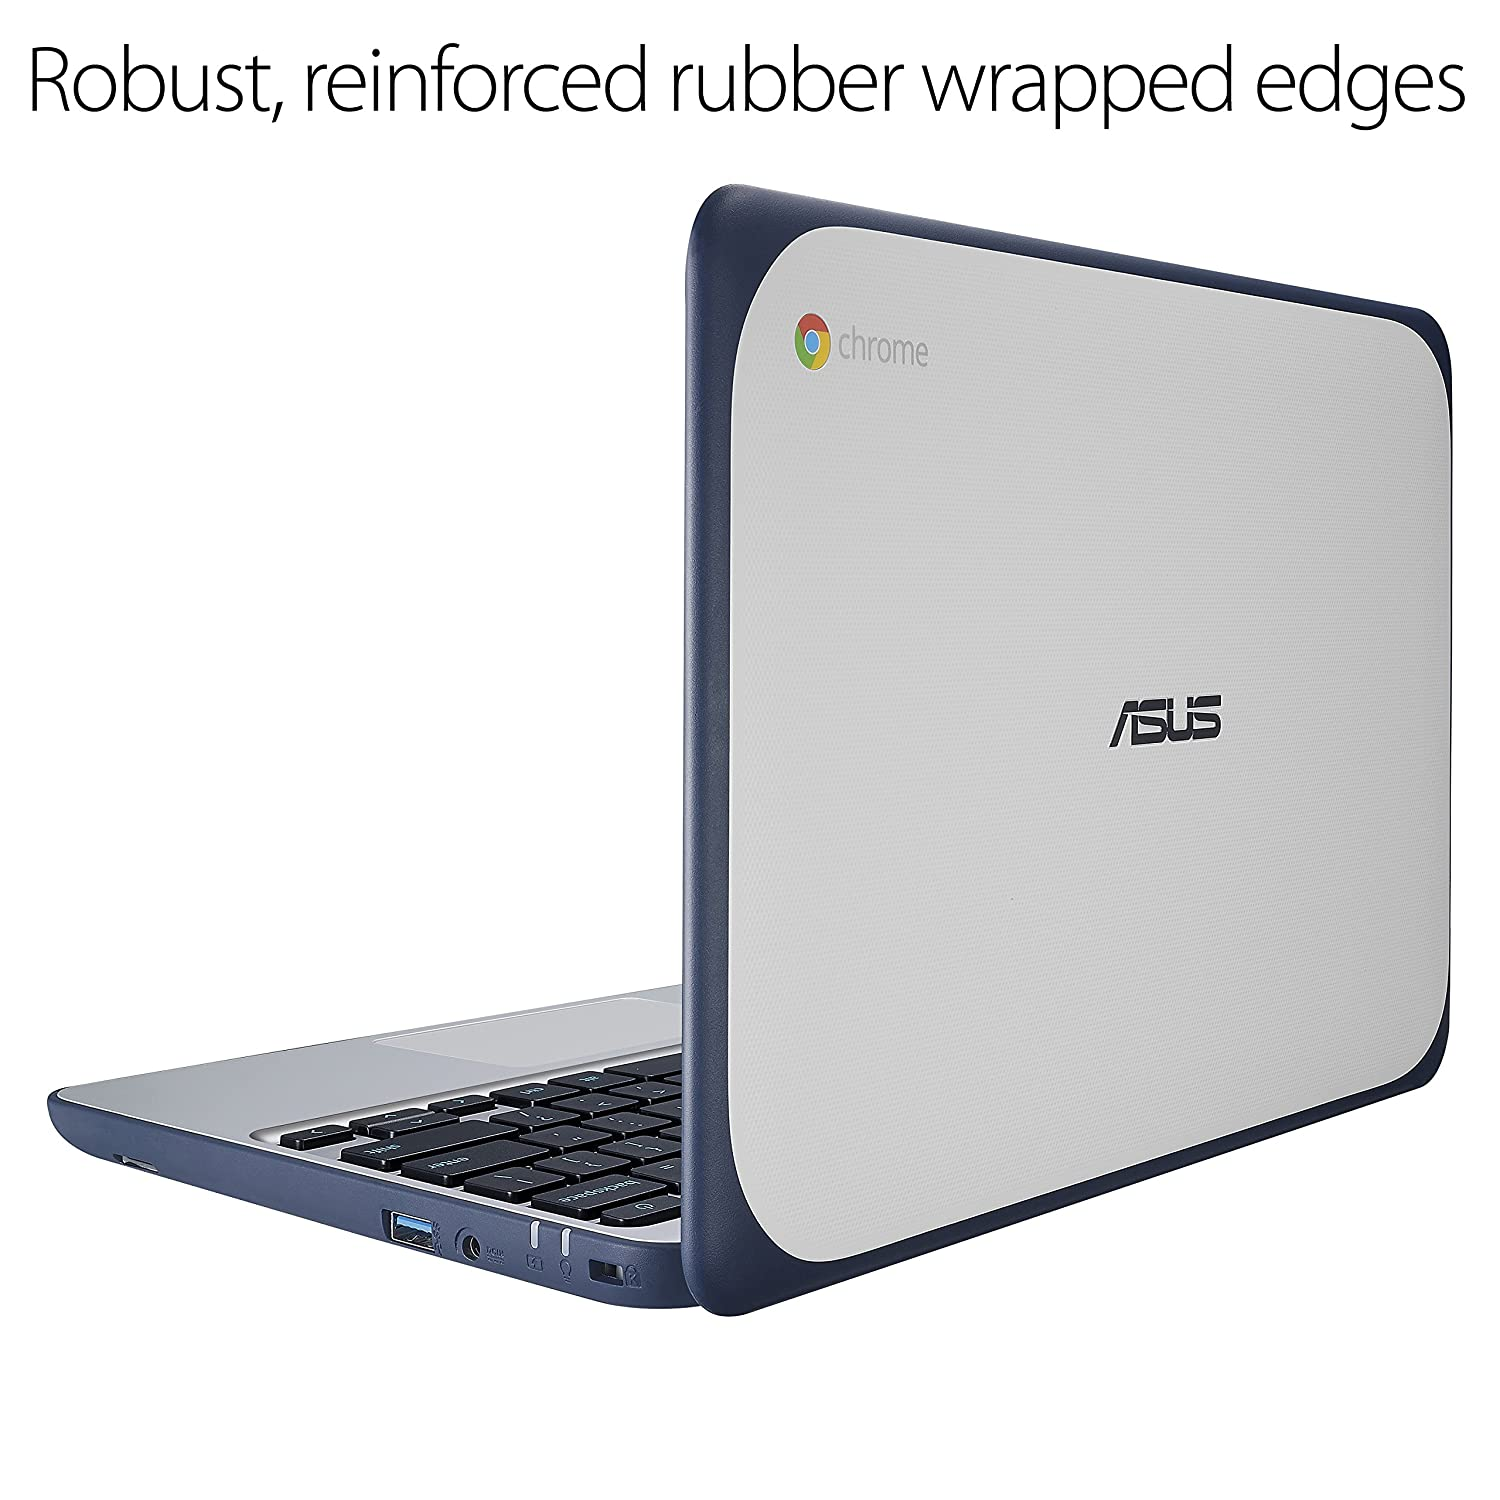 Intel Celeron 4 GB, 16GB eMMC, Dark Blue, Silver Blue /& Basics 11.6 Inch Laptop Tablet Sleeve Case ASUS Chromebook C202SA-YS02 11.6 Ruggedized and Water Resistant Design with 180 Degree